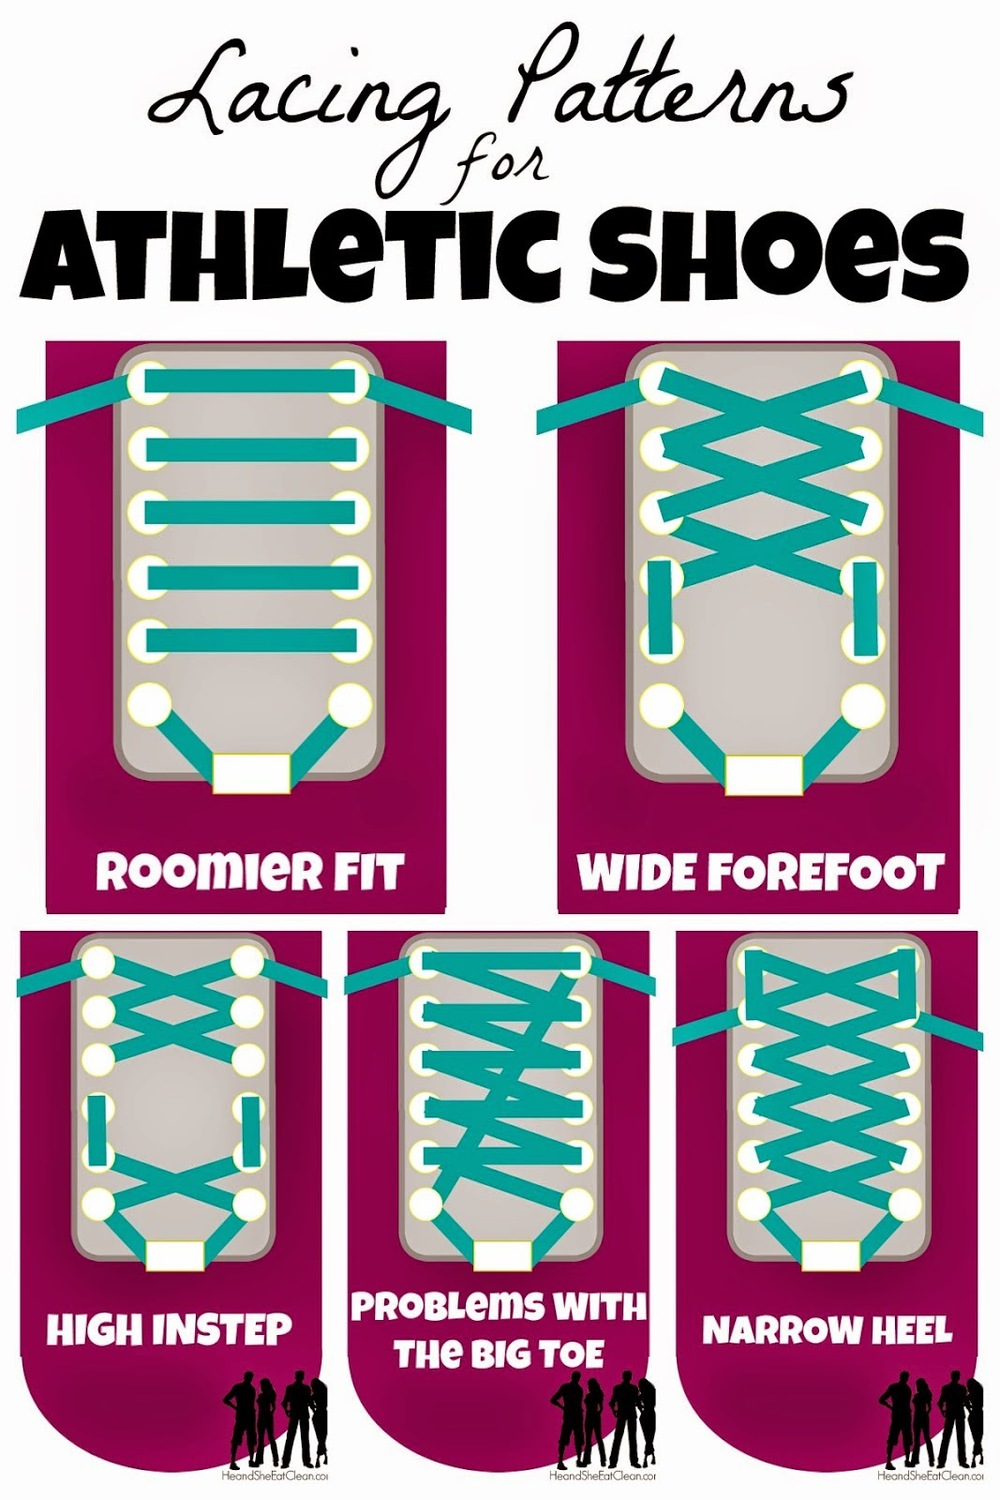 Lacing_Patterns_How_to_for_Athletic_Running_Tennis_Shoes_Workout_Tips_Shoelaces_He_She_Eat_Clean.jpg